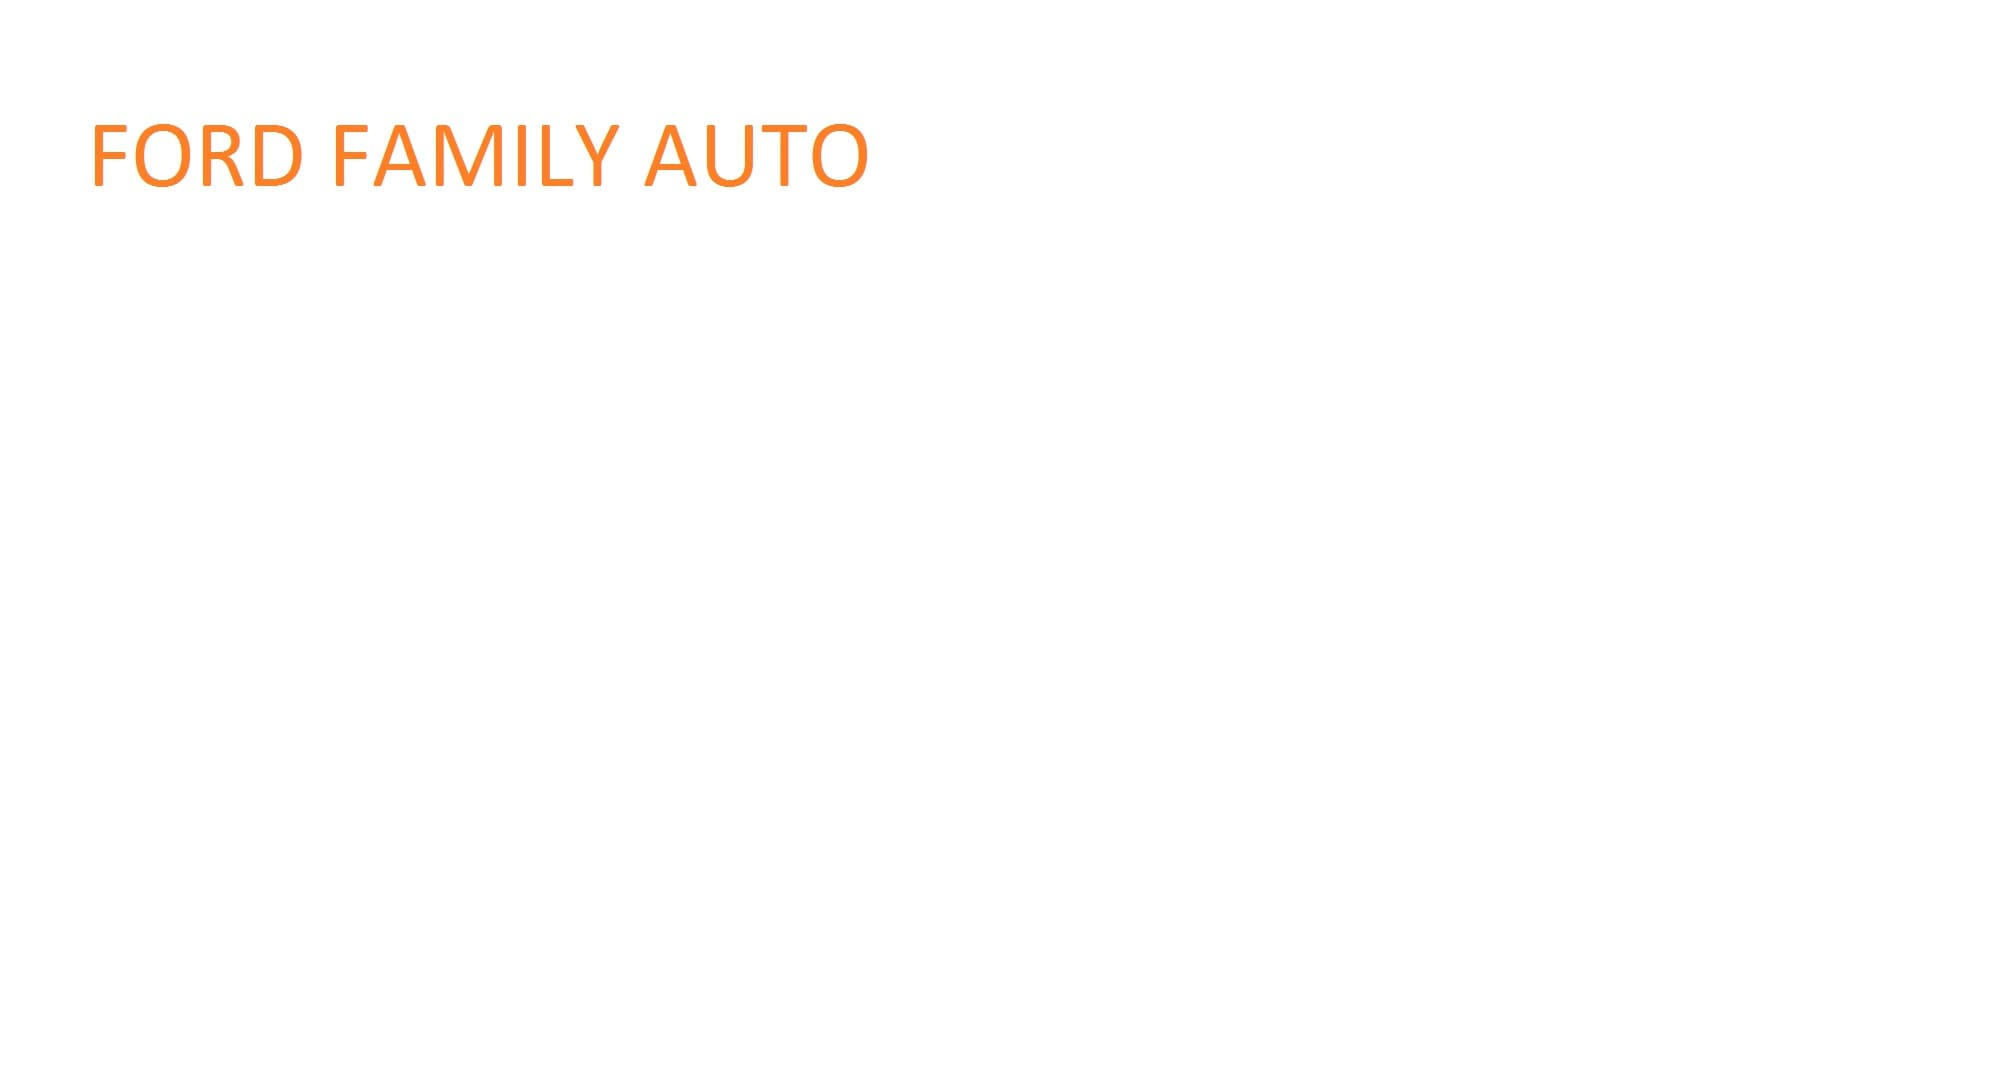 Ford Family Auto